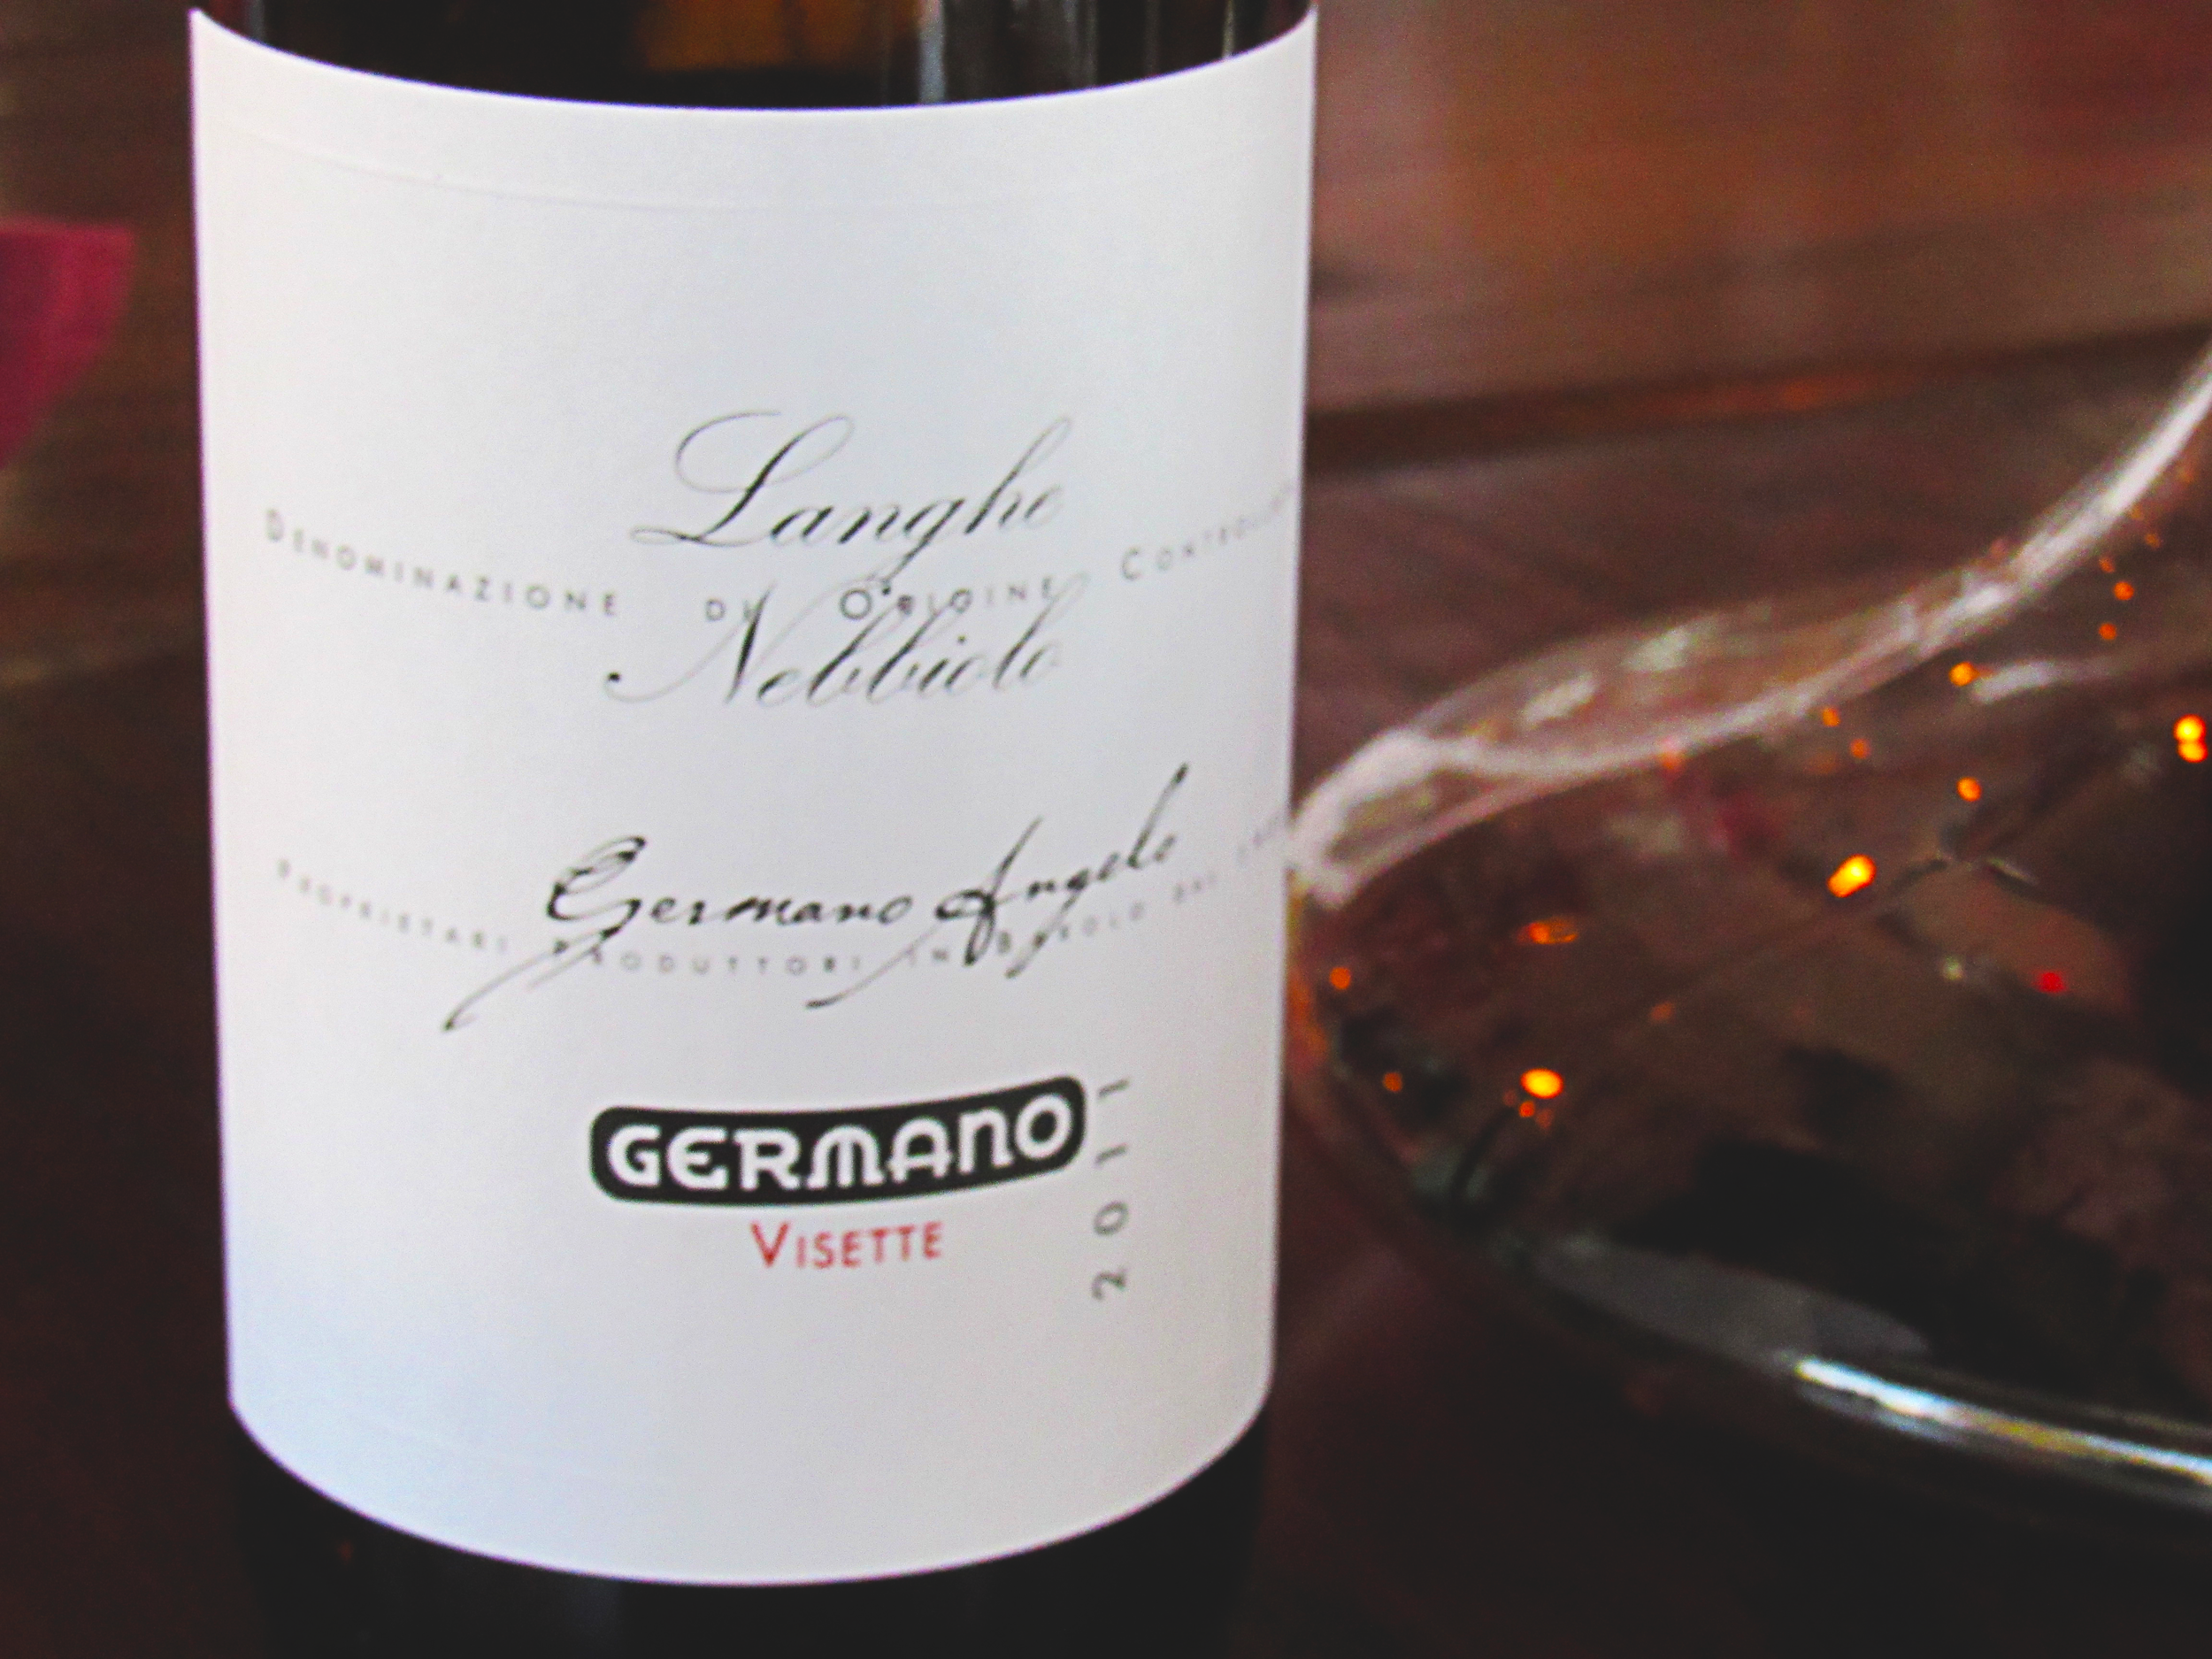 Angelo Germano Neddiolo Lange Visette. 2011 was a good year.